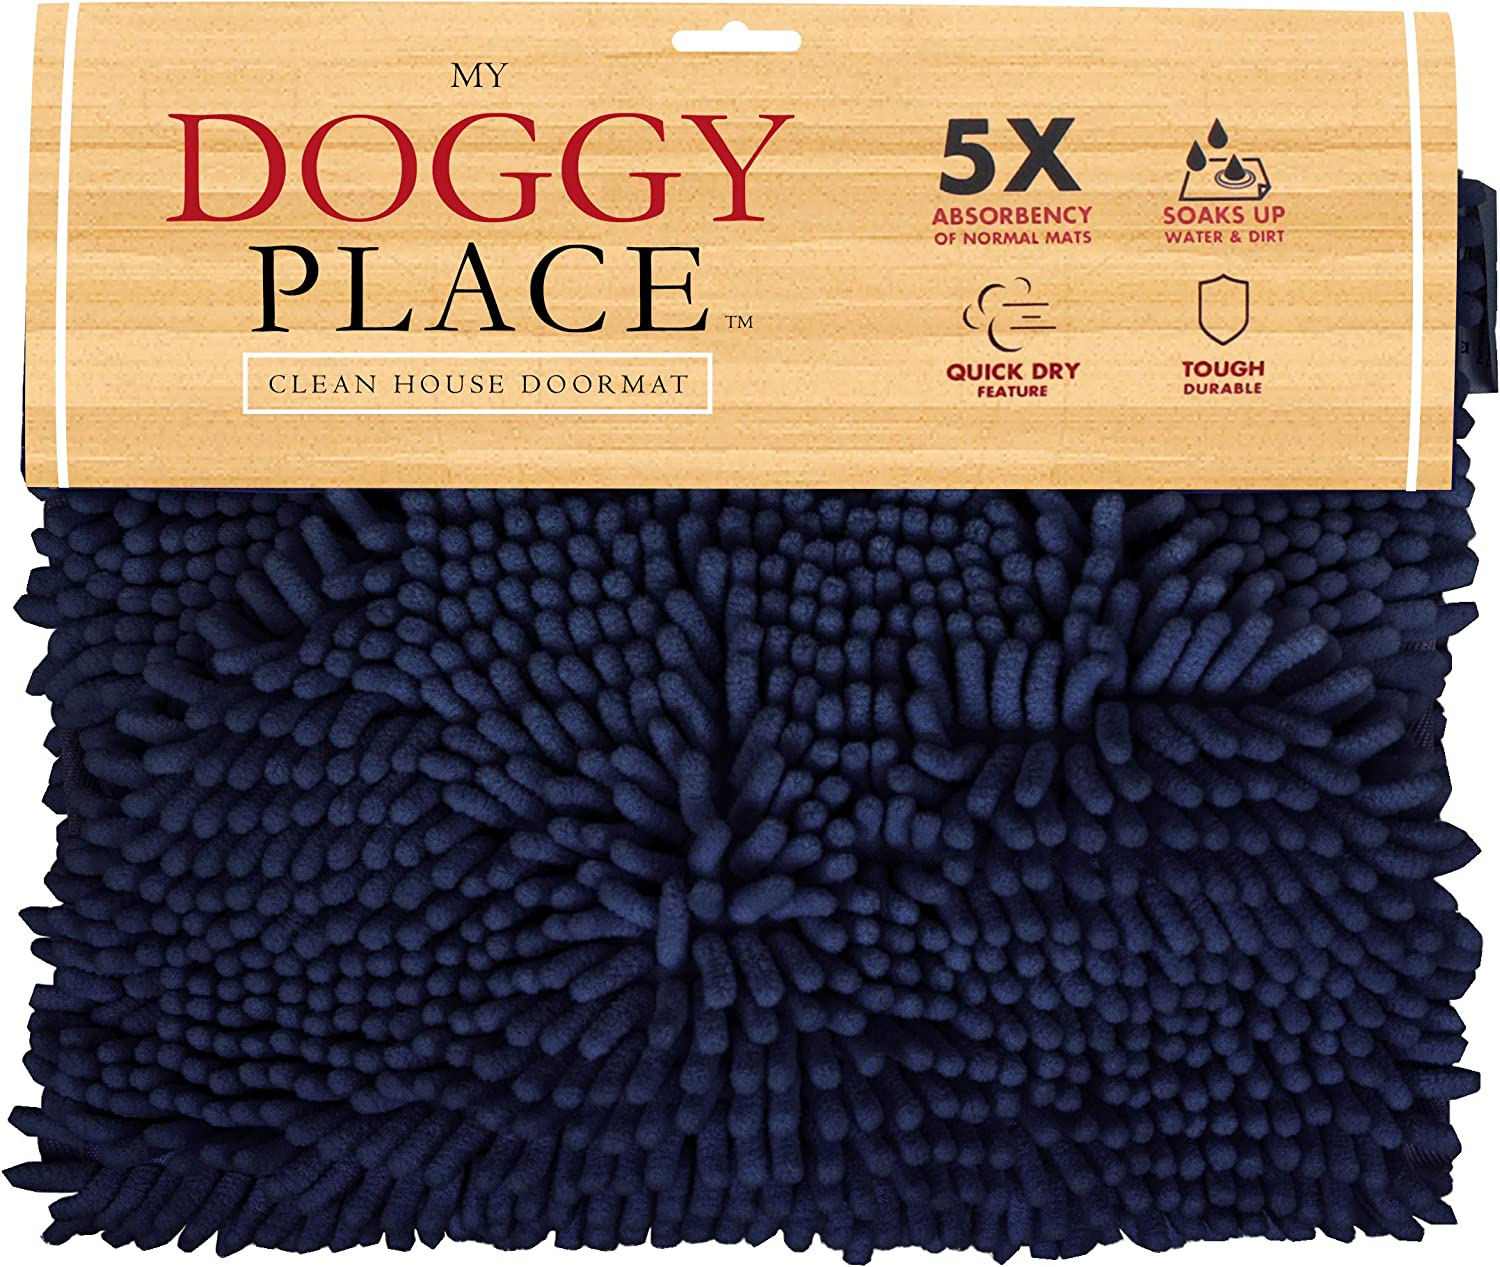 My Doggy Place - Ultra Absorbent Microfiber Chenille Dog Bath Shammy Dry Towel with Hand Pockets, Durable, Quick Drying, Washable, Prevent Mud Dirt